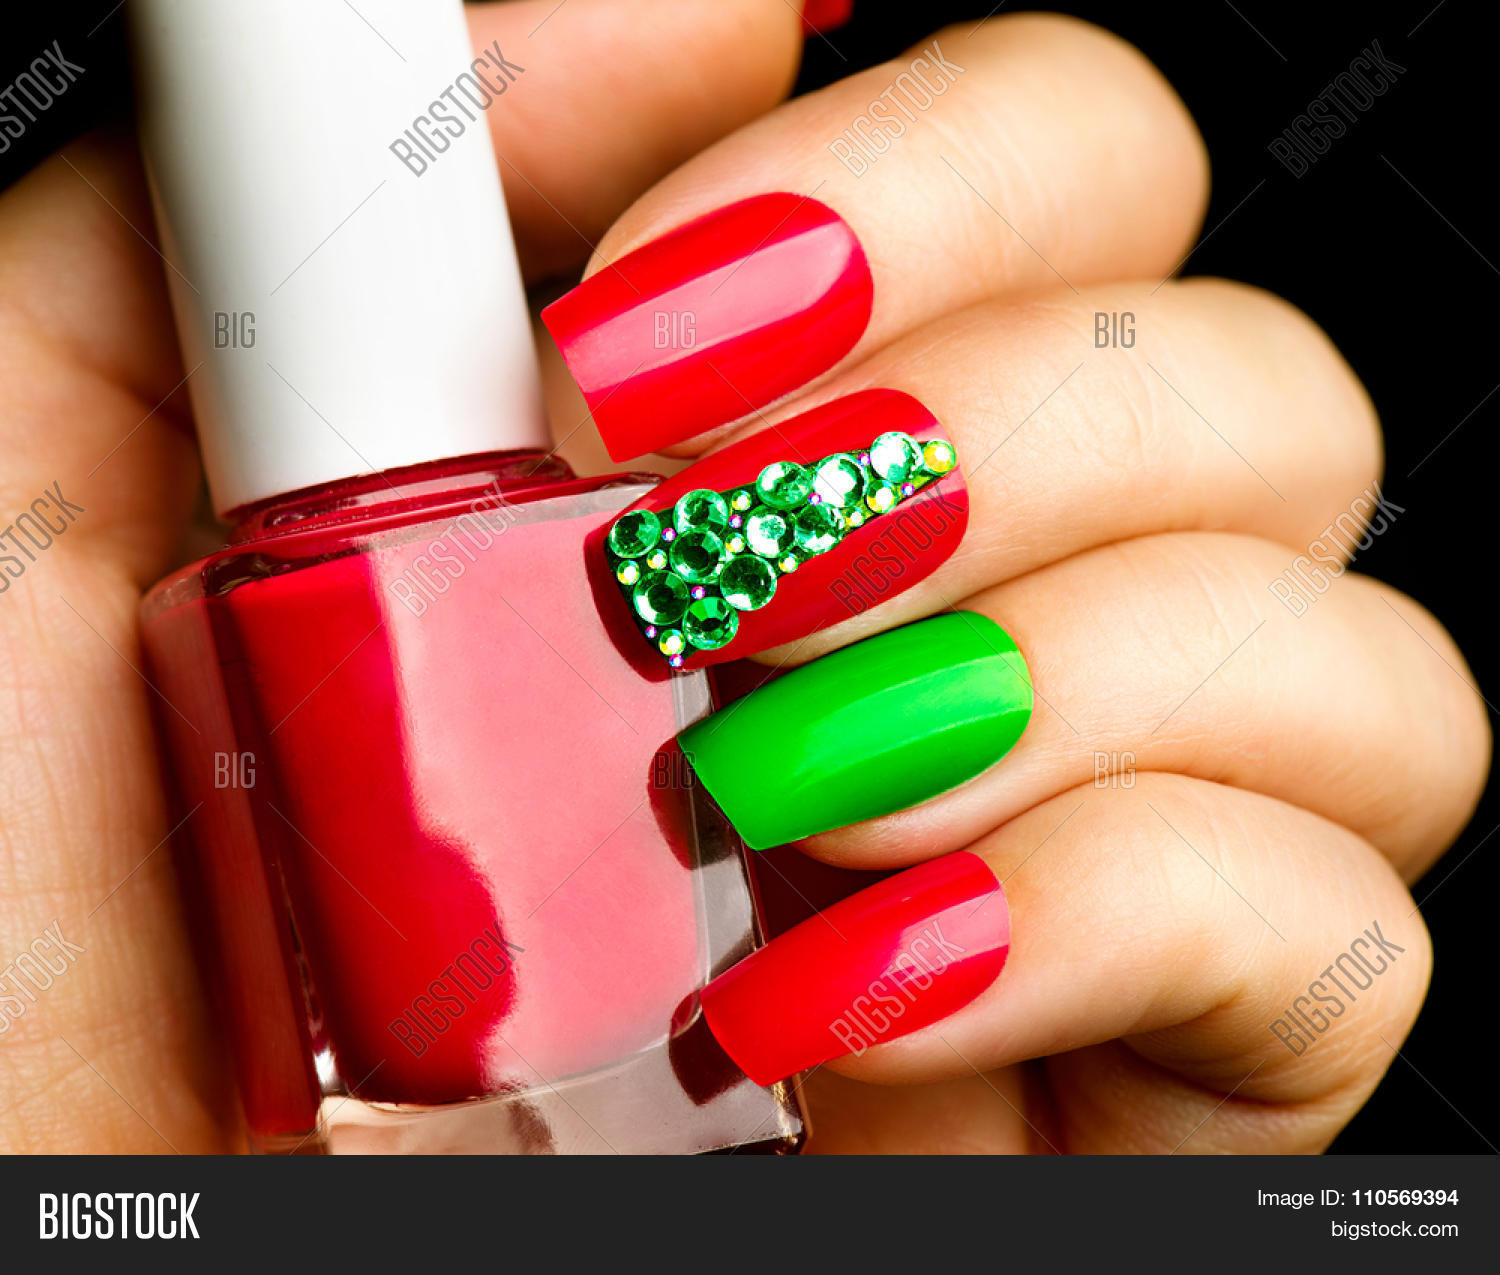 Christmas Nail Art Image & Photo (Free Trial) | Bigstock